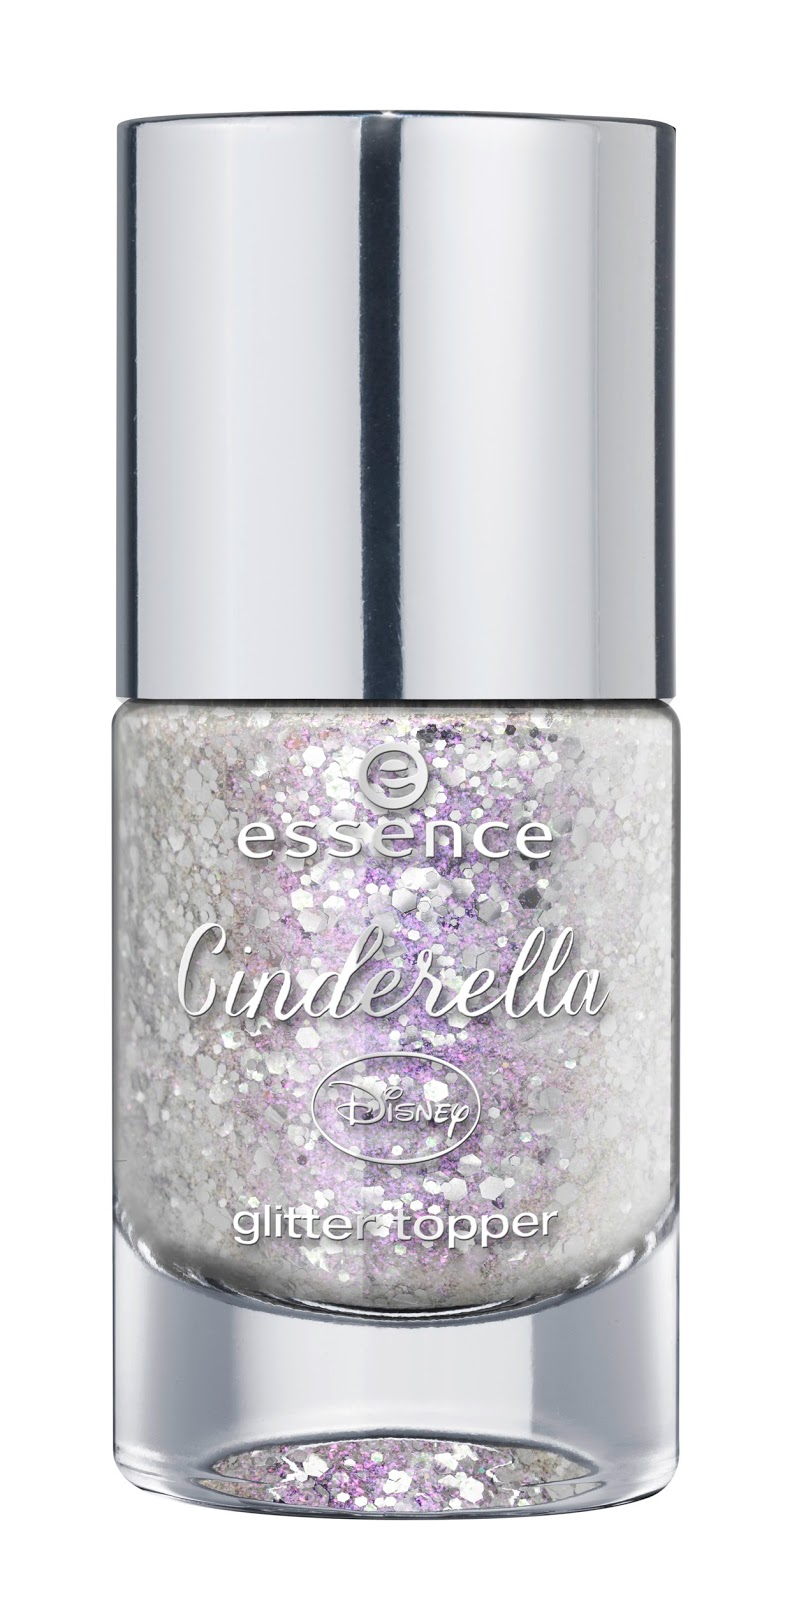 essence cinderella – glitter topper, 01 the glass slipper